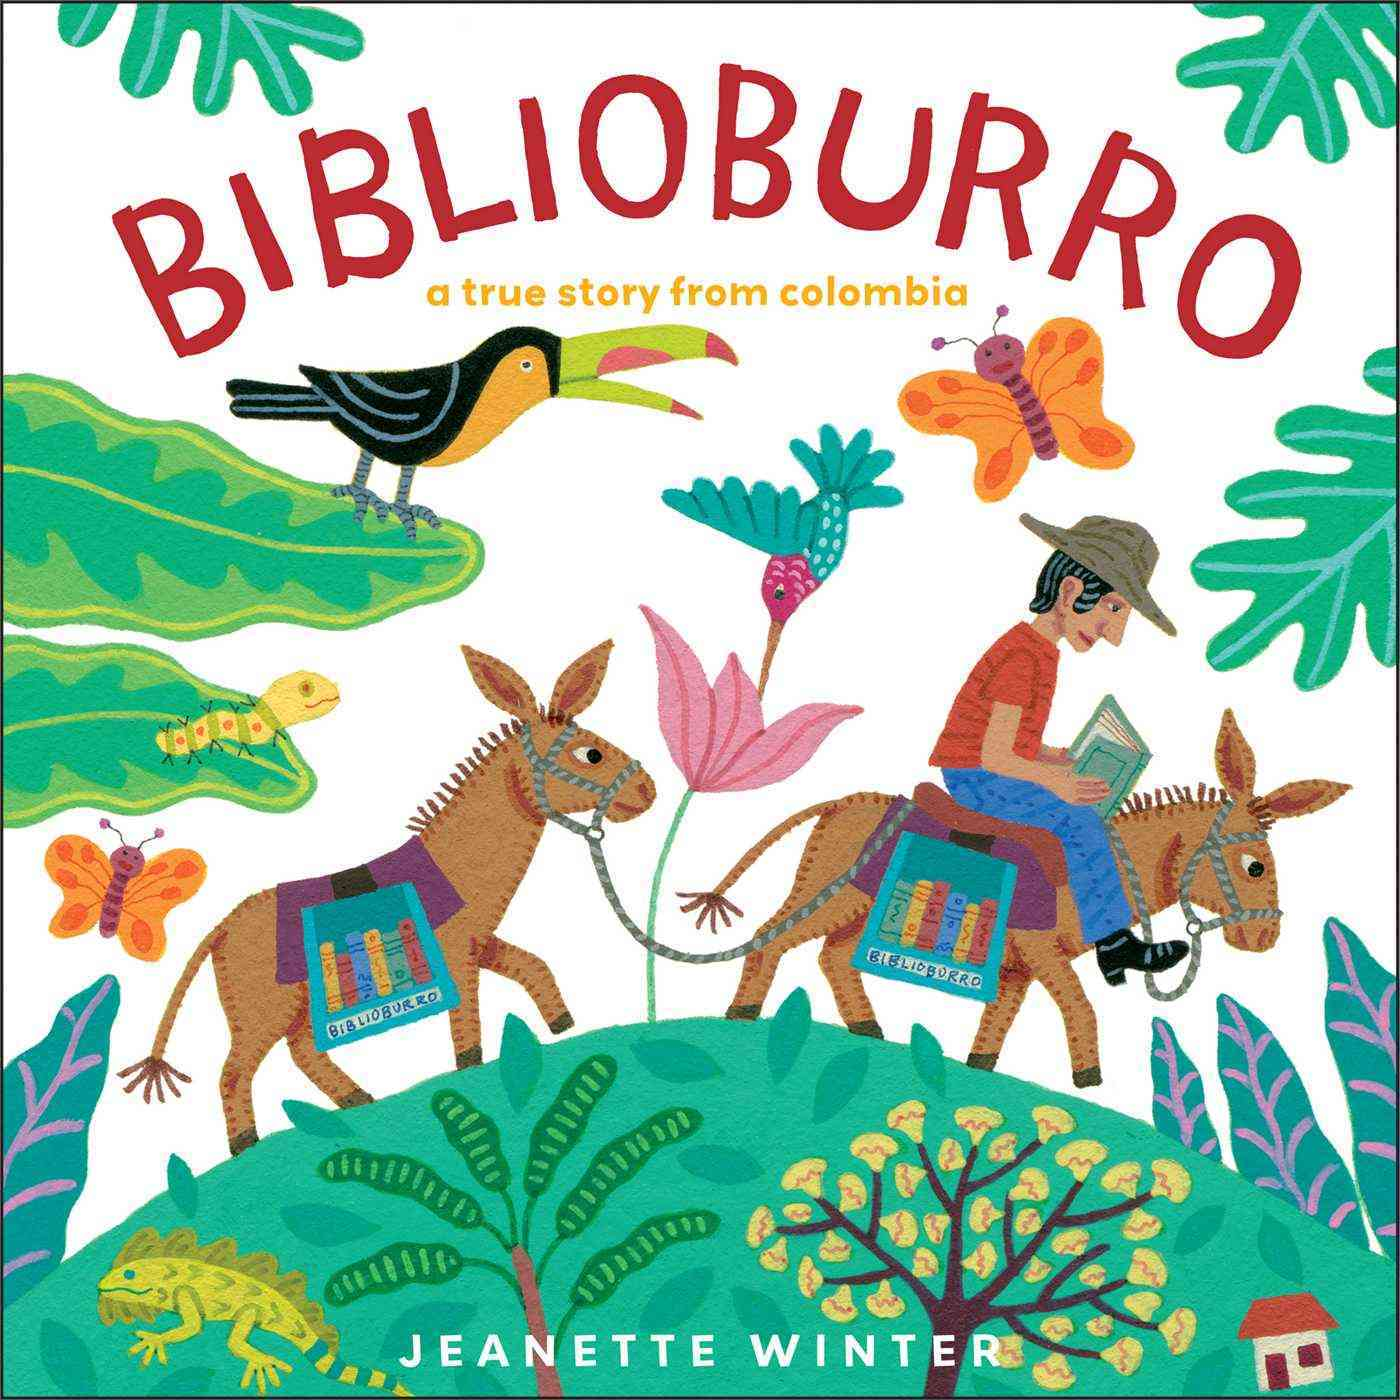 Biblioburro: A True Story from Colombia (Hardcover)